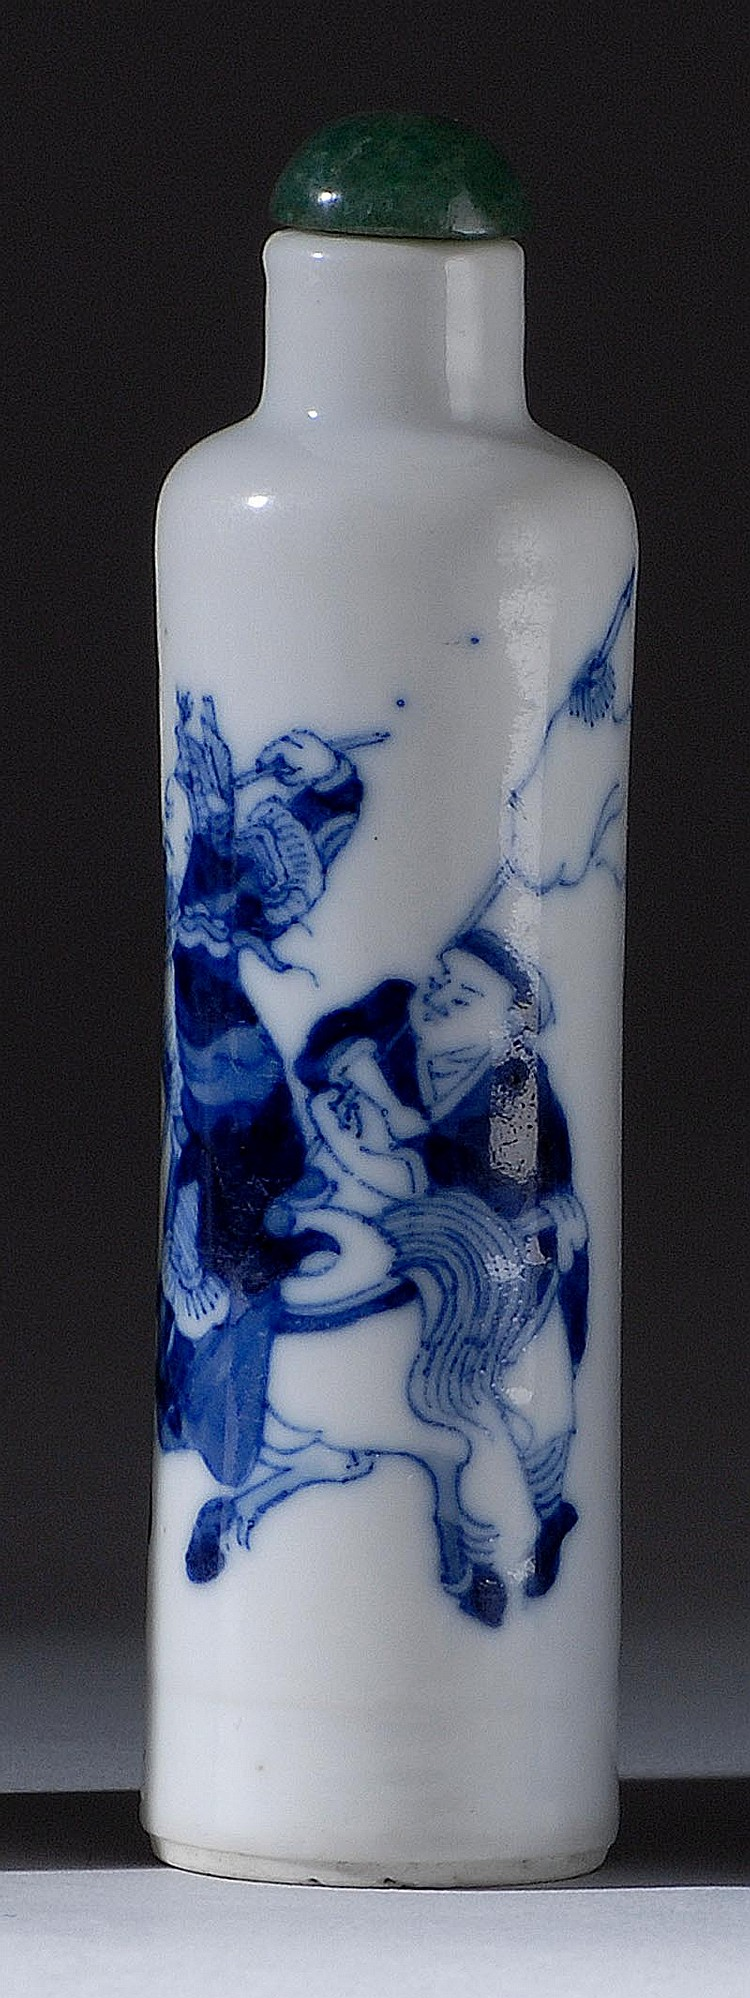 UNDERGLAZE BLUE PORCELAIN SNUFF BOTTLE In cylinder form with decoration of a mounted warrior and attendant. Height 3